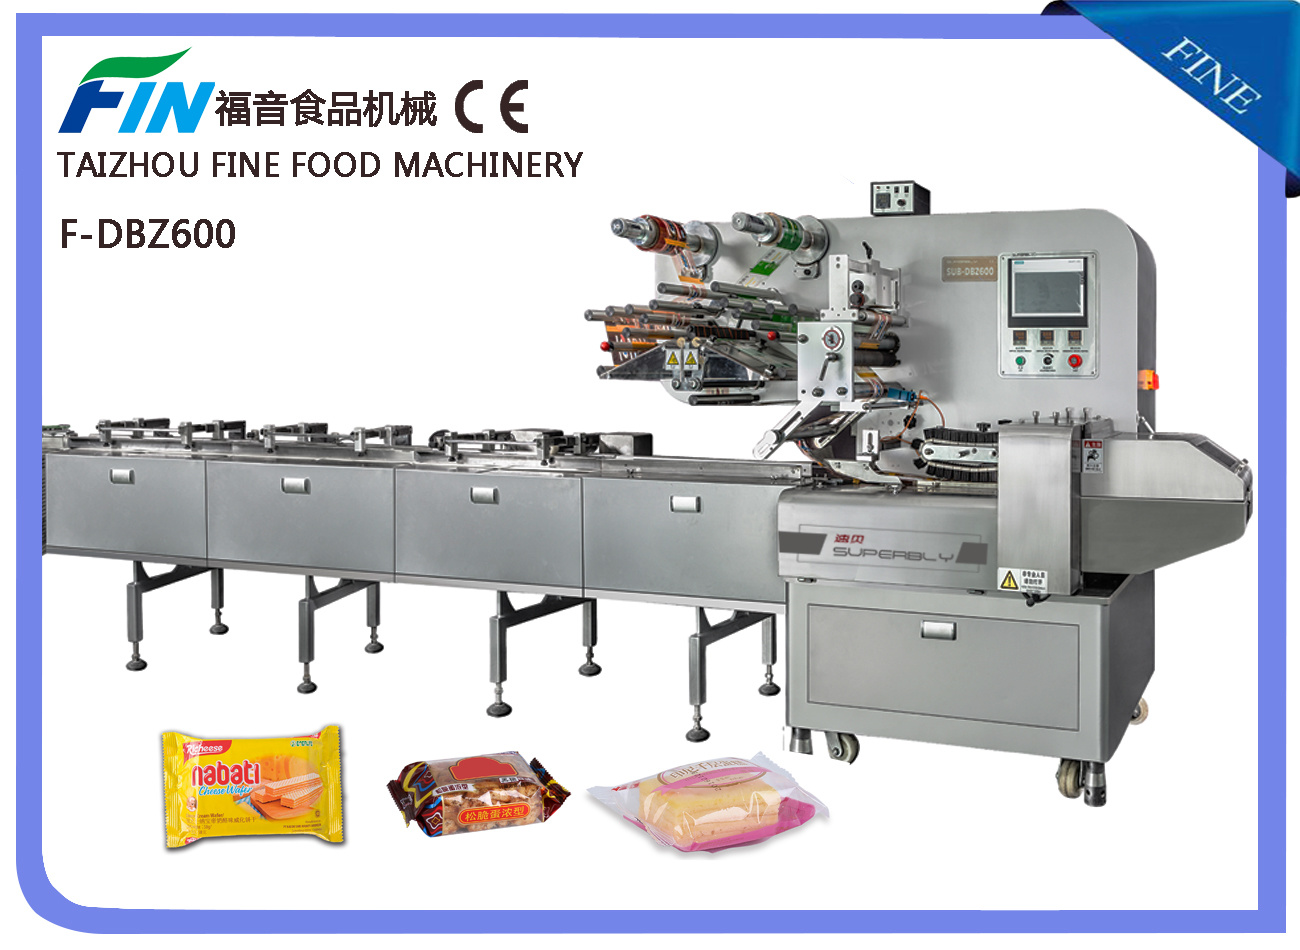 F-Dbz600 Automatic High Speed Multi-Functional Pillow Packing Machine